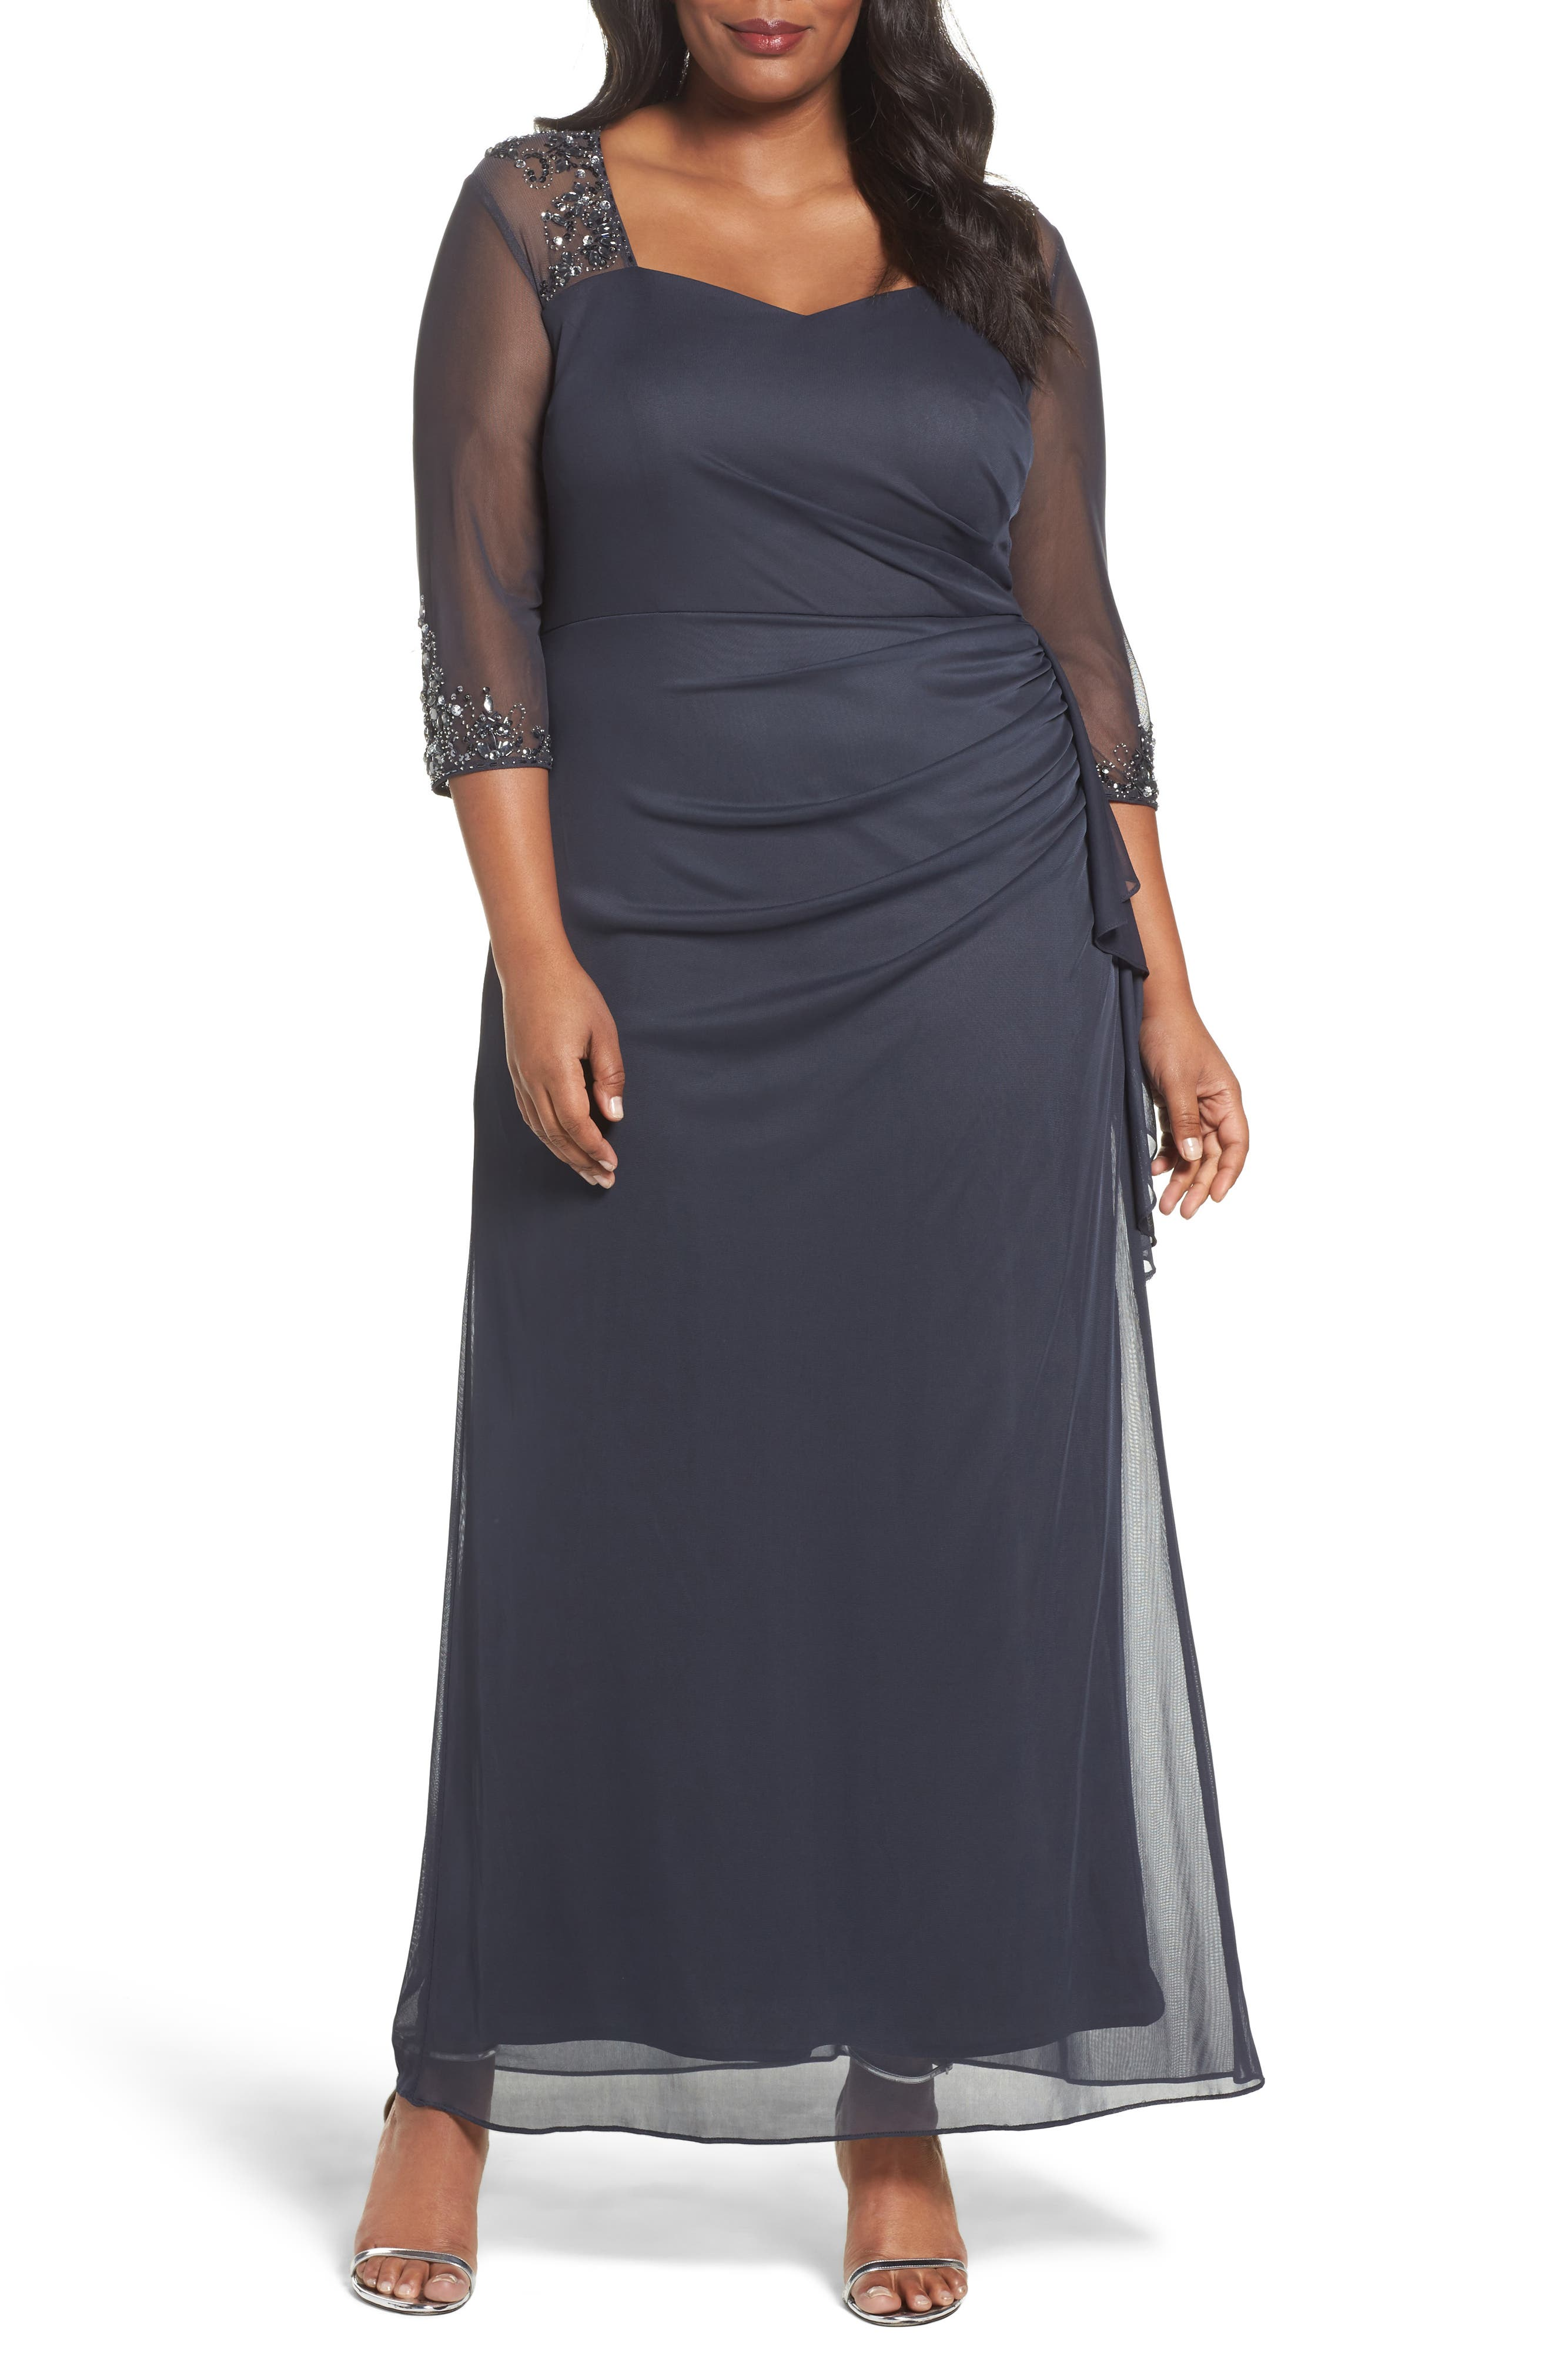 ALEX EVENINGS, Embellished Side Pleat Sweetheart Gown, Main thumbnail 1, color, 024